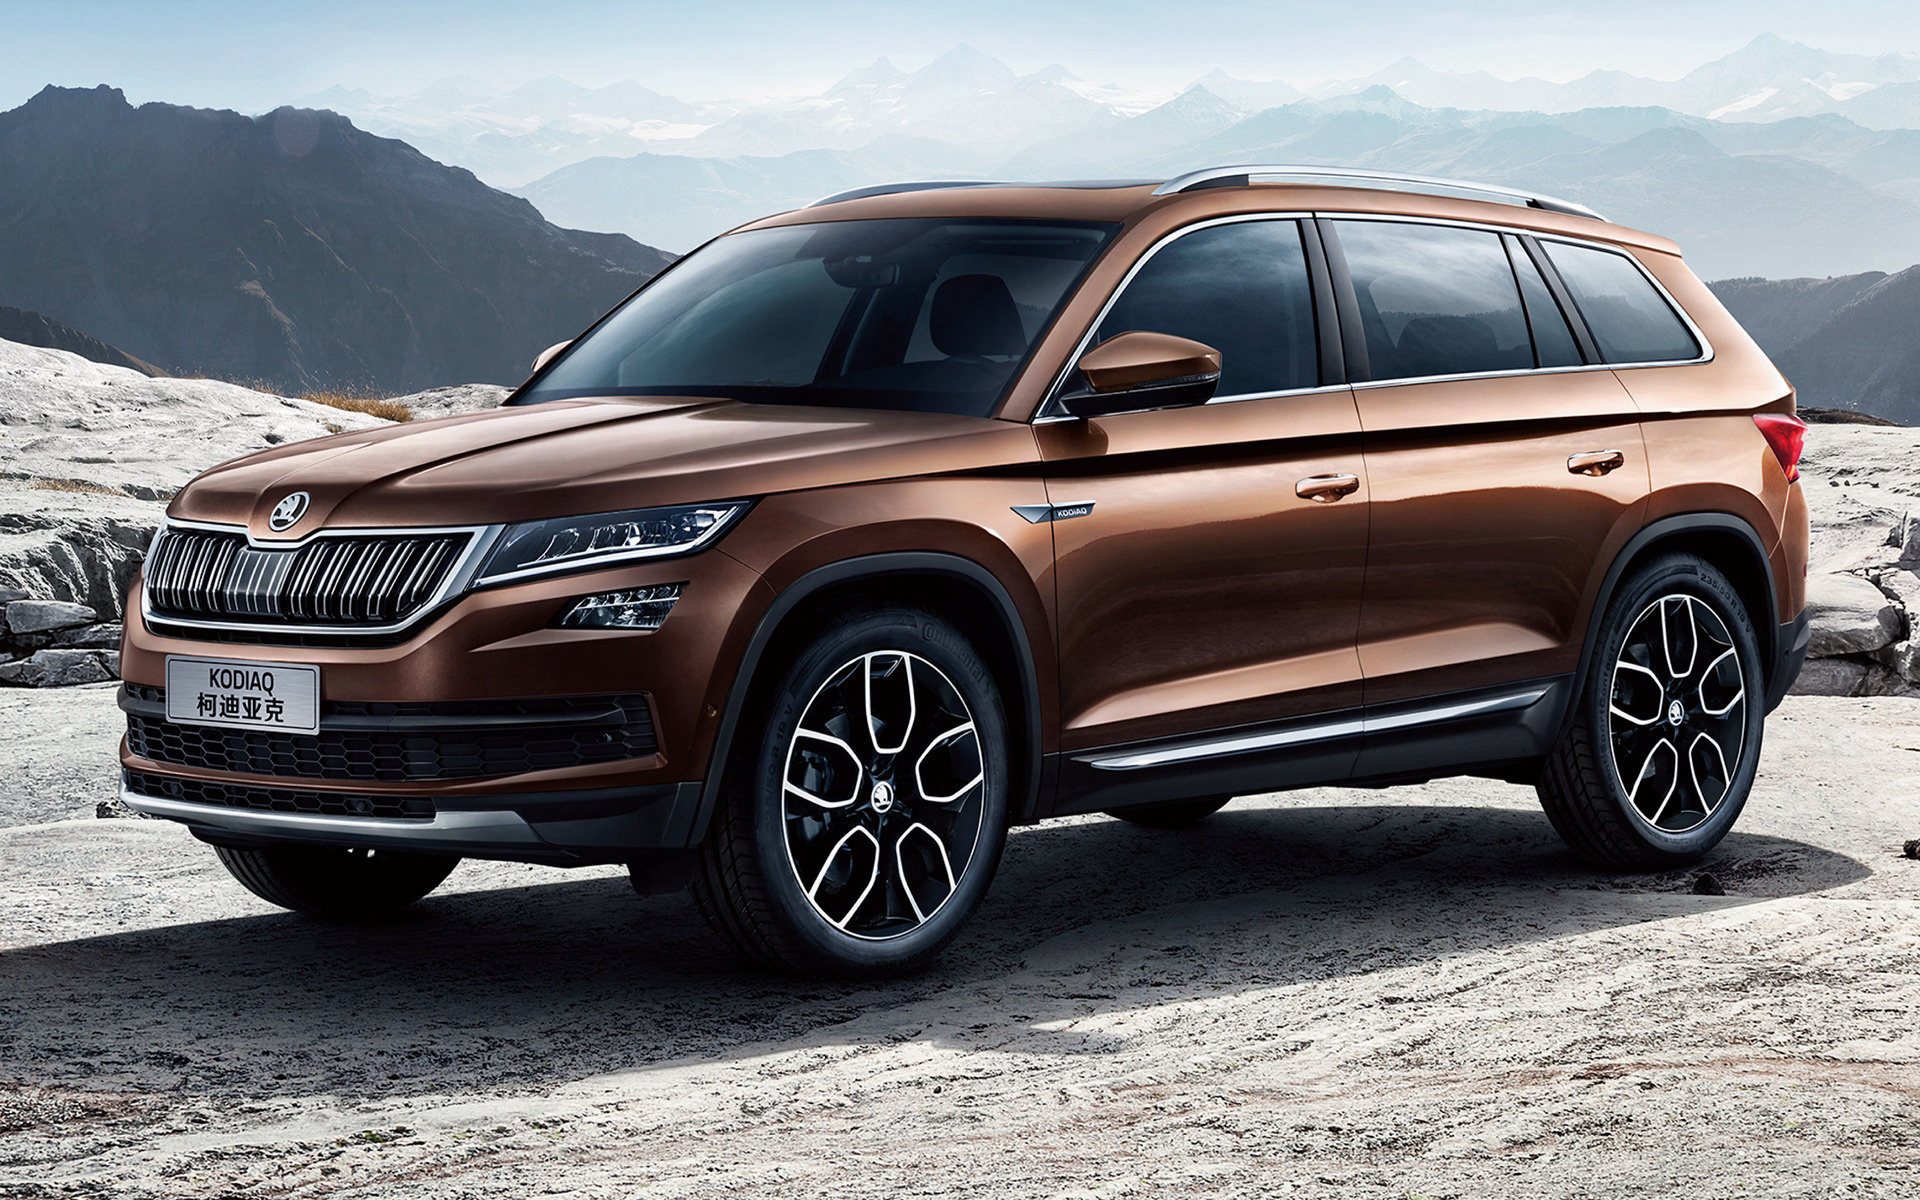 Skoda Kodiaq (2017) CN Wallpapers and HD Images - Car Pixel